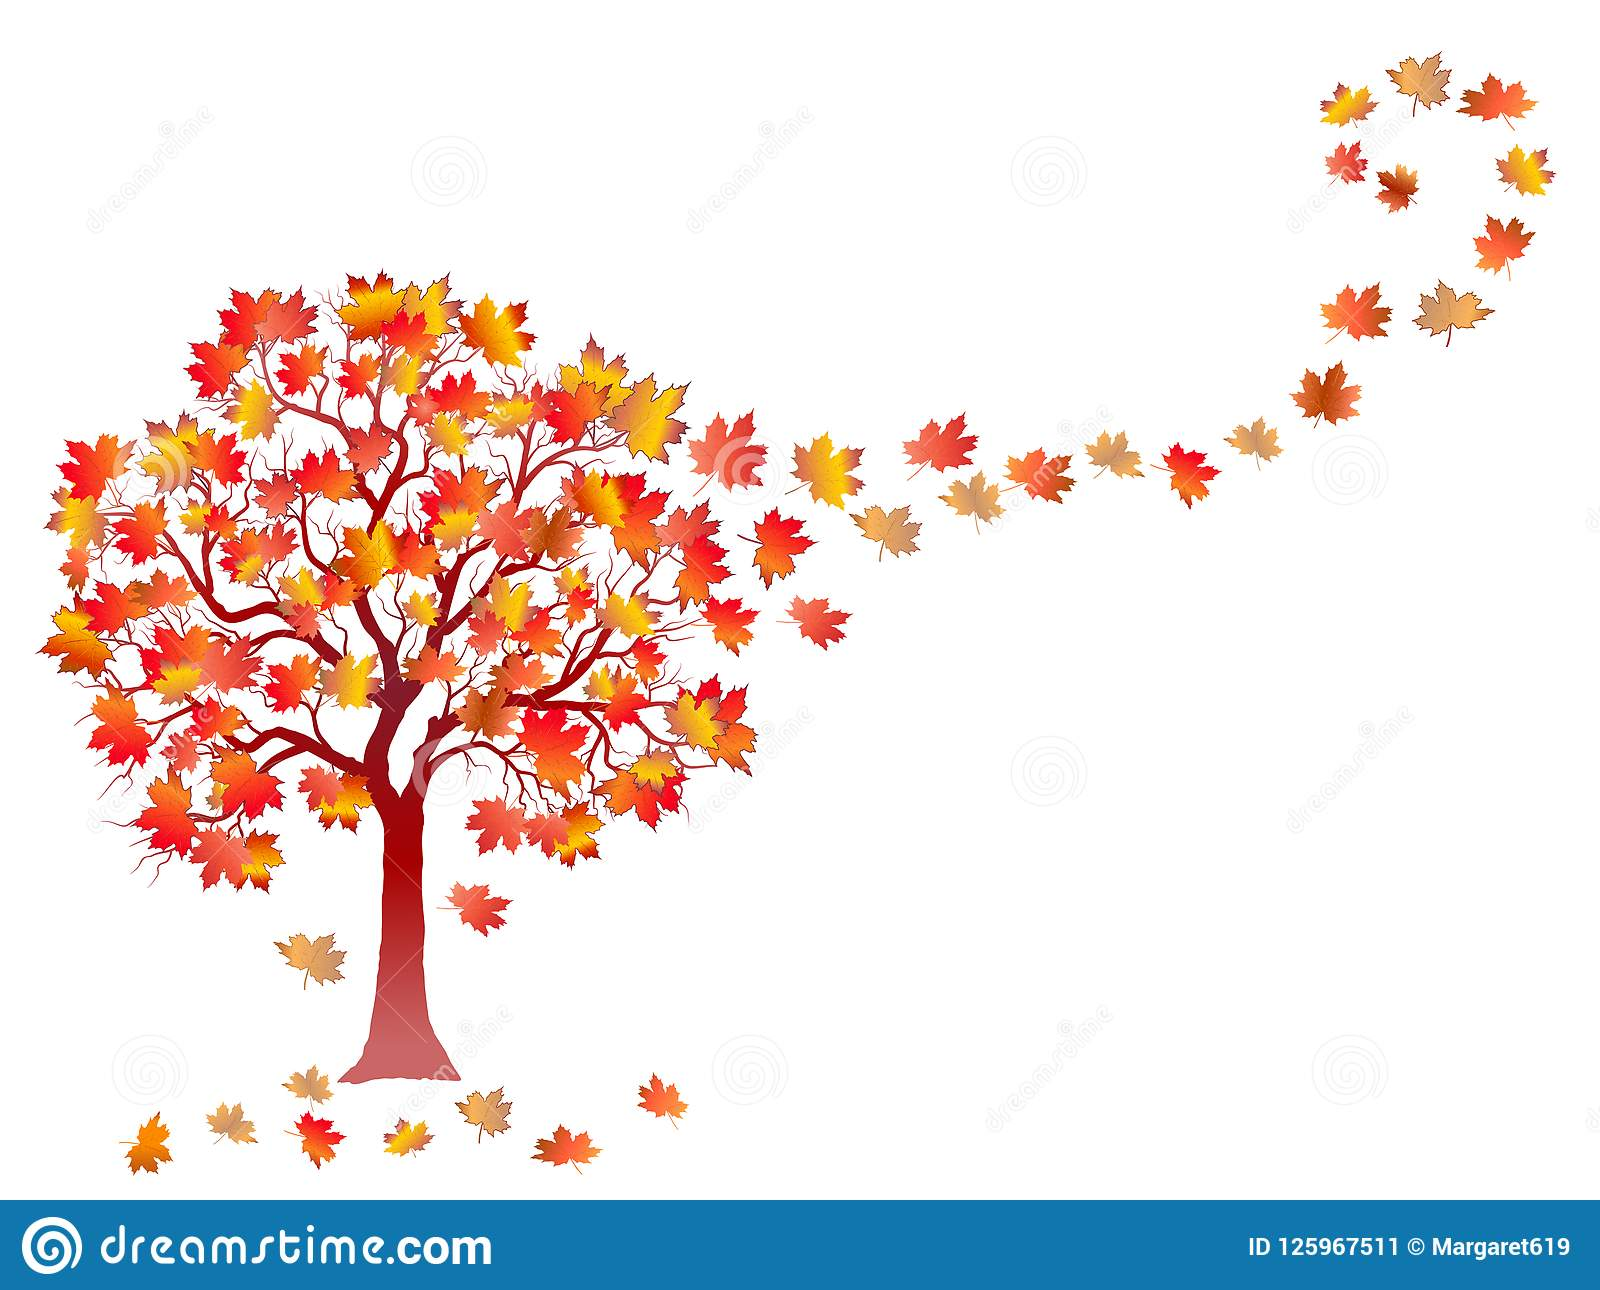 Fall Background With Colorful Tree And Falling Leaves Isolated On White Background Stock Illustration Illustration Of Brochure Card 125967511